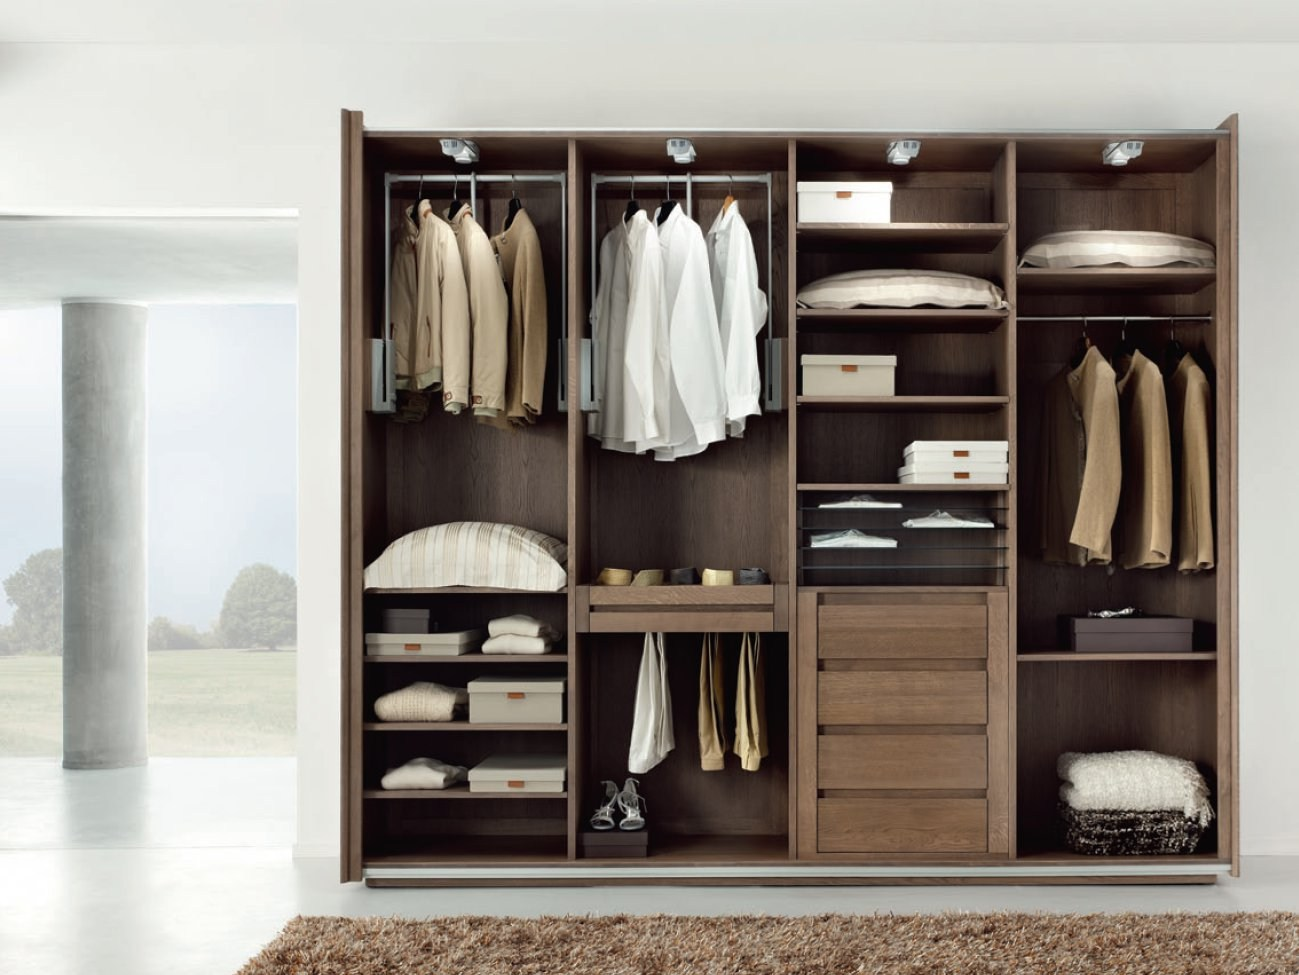 #281D1A Oak Wardrobe With Sliding Doors ESSENZA By Domus Arte  945 armoire porte coulissante pin 1299x975 px @ aertt.com